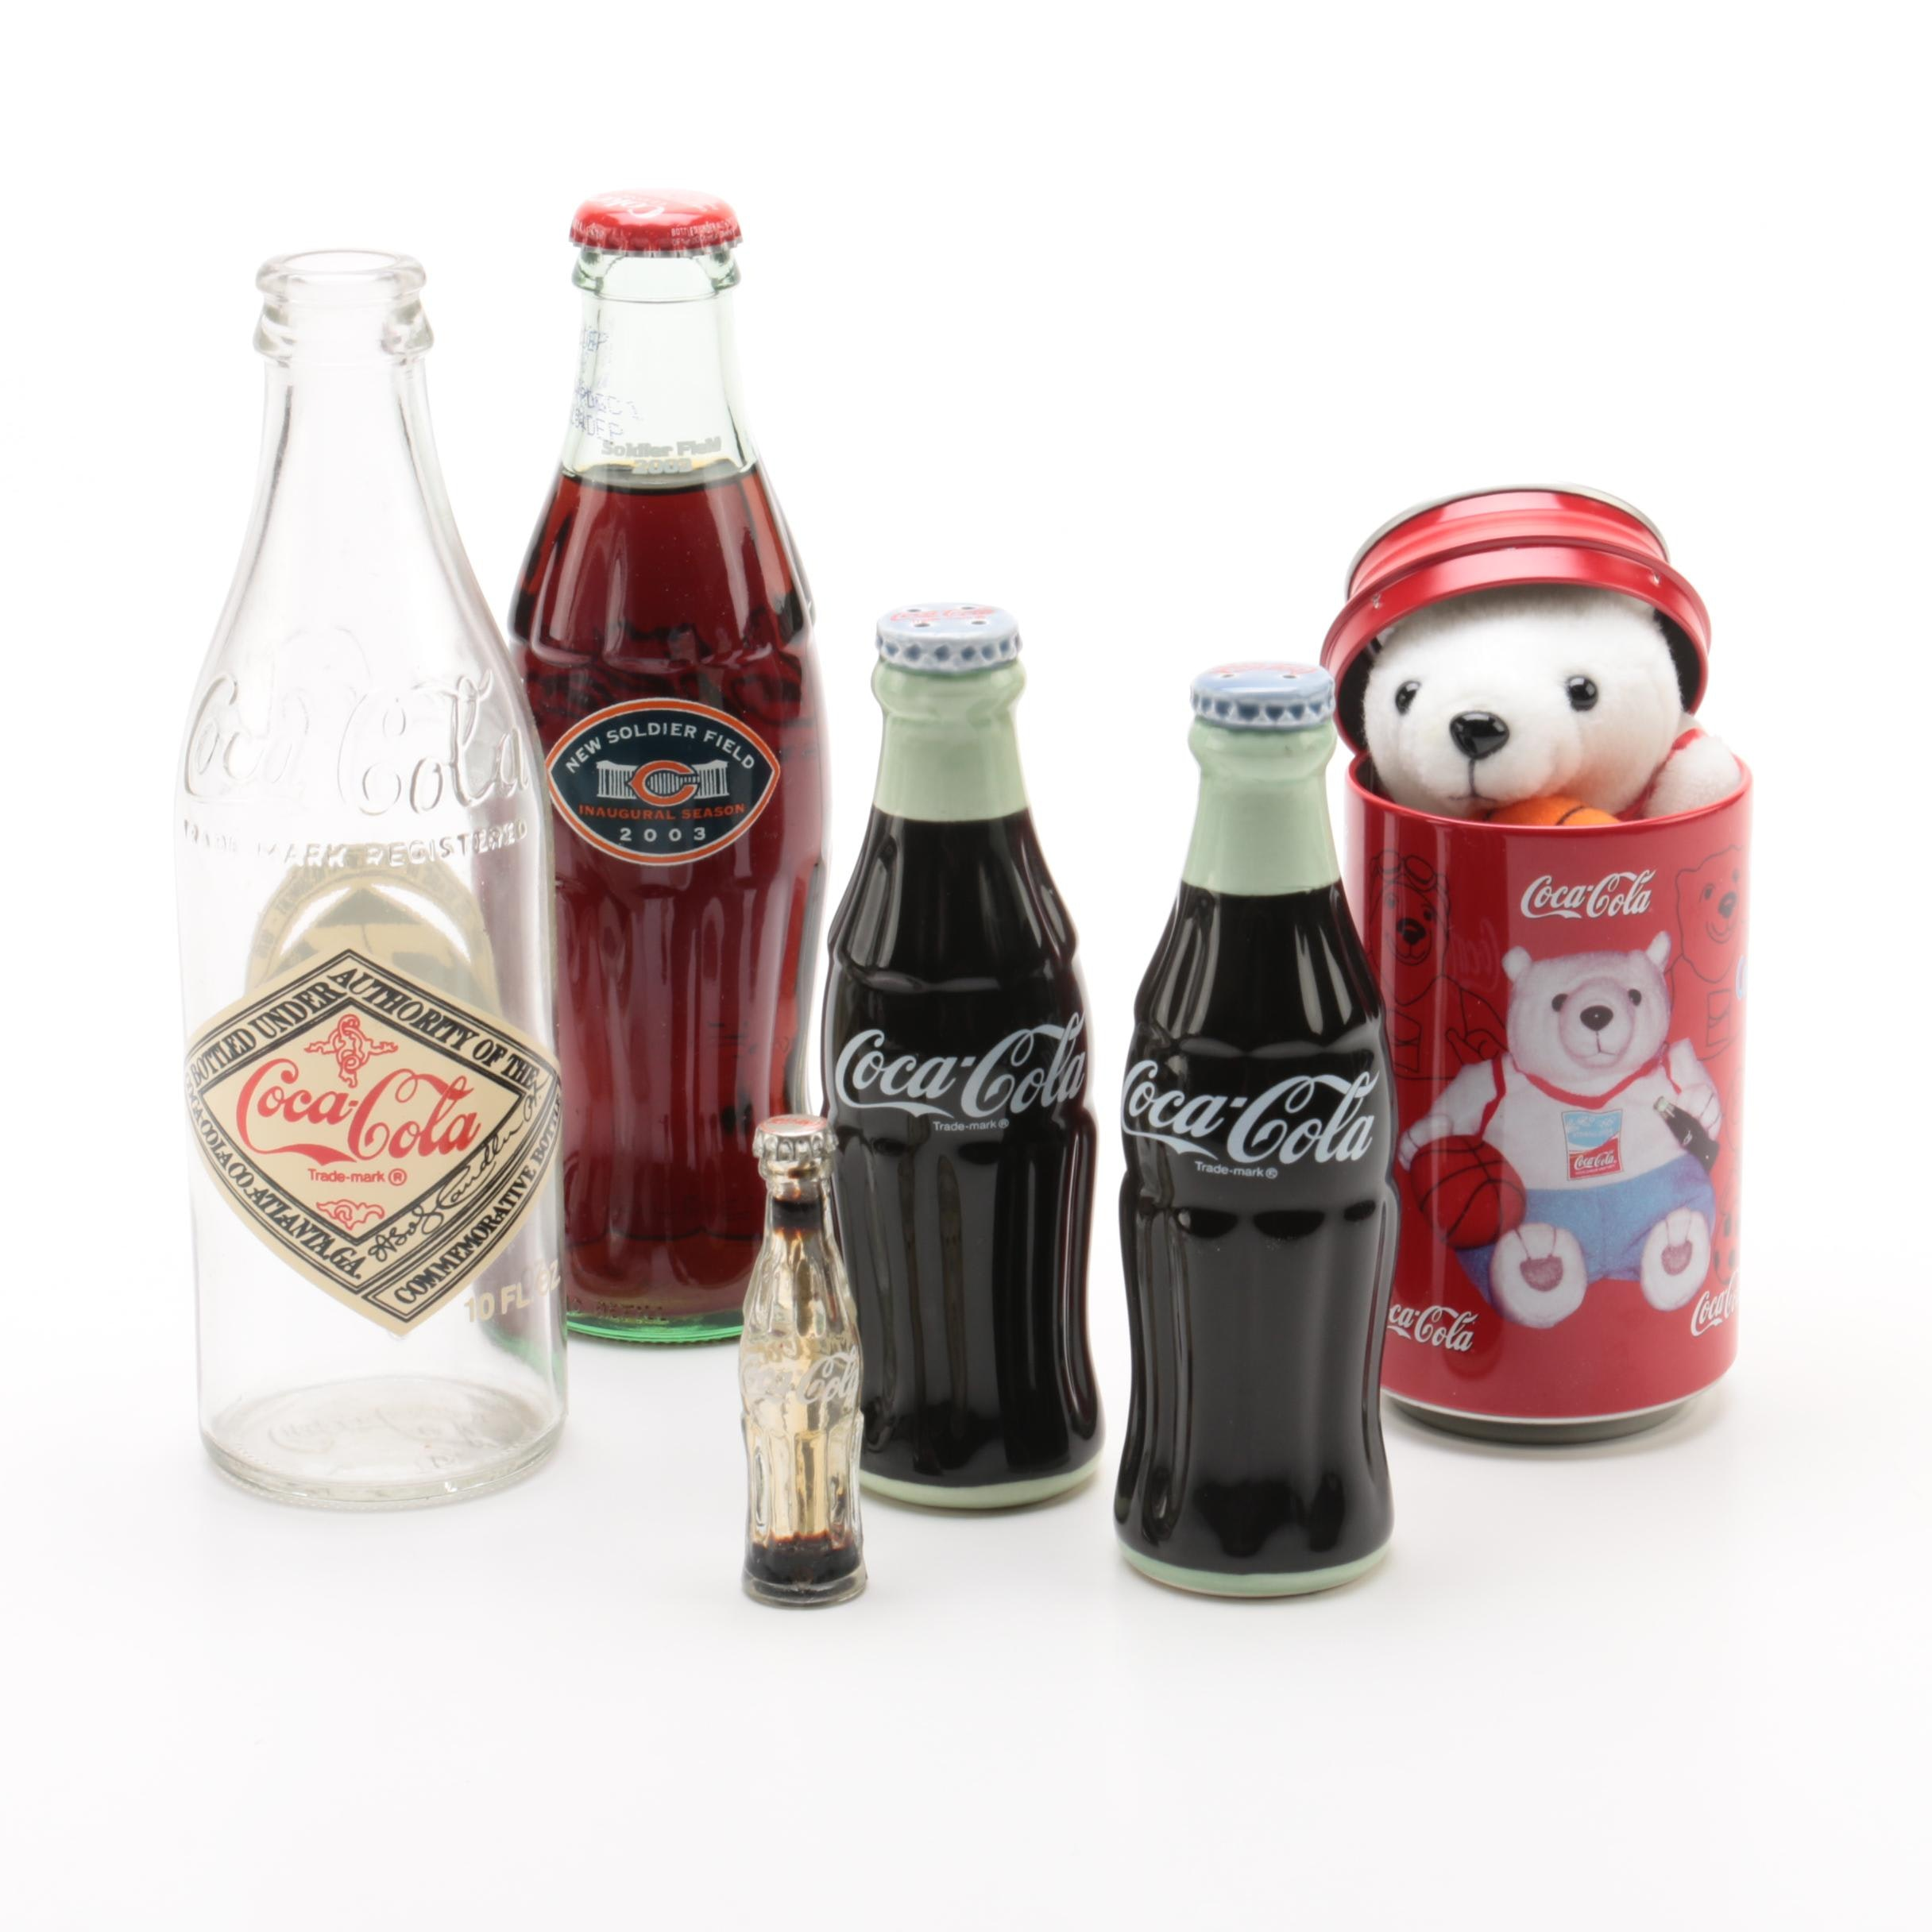 Coca-Cola Themed Collectibles Including Salt and Pepper Shakers